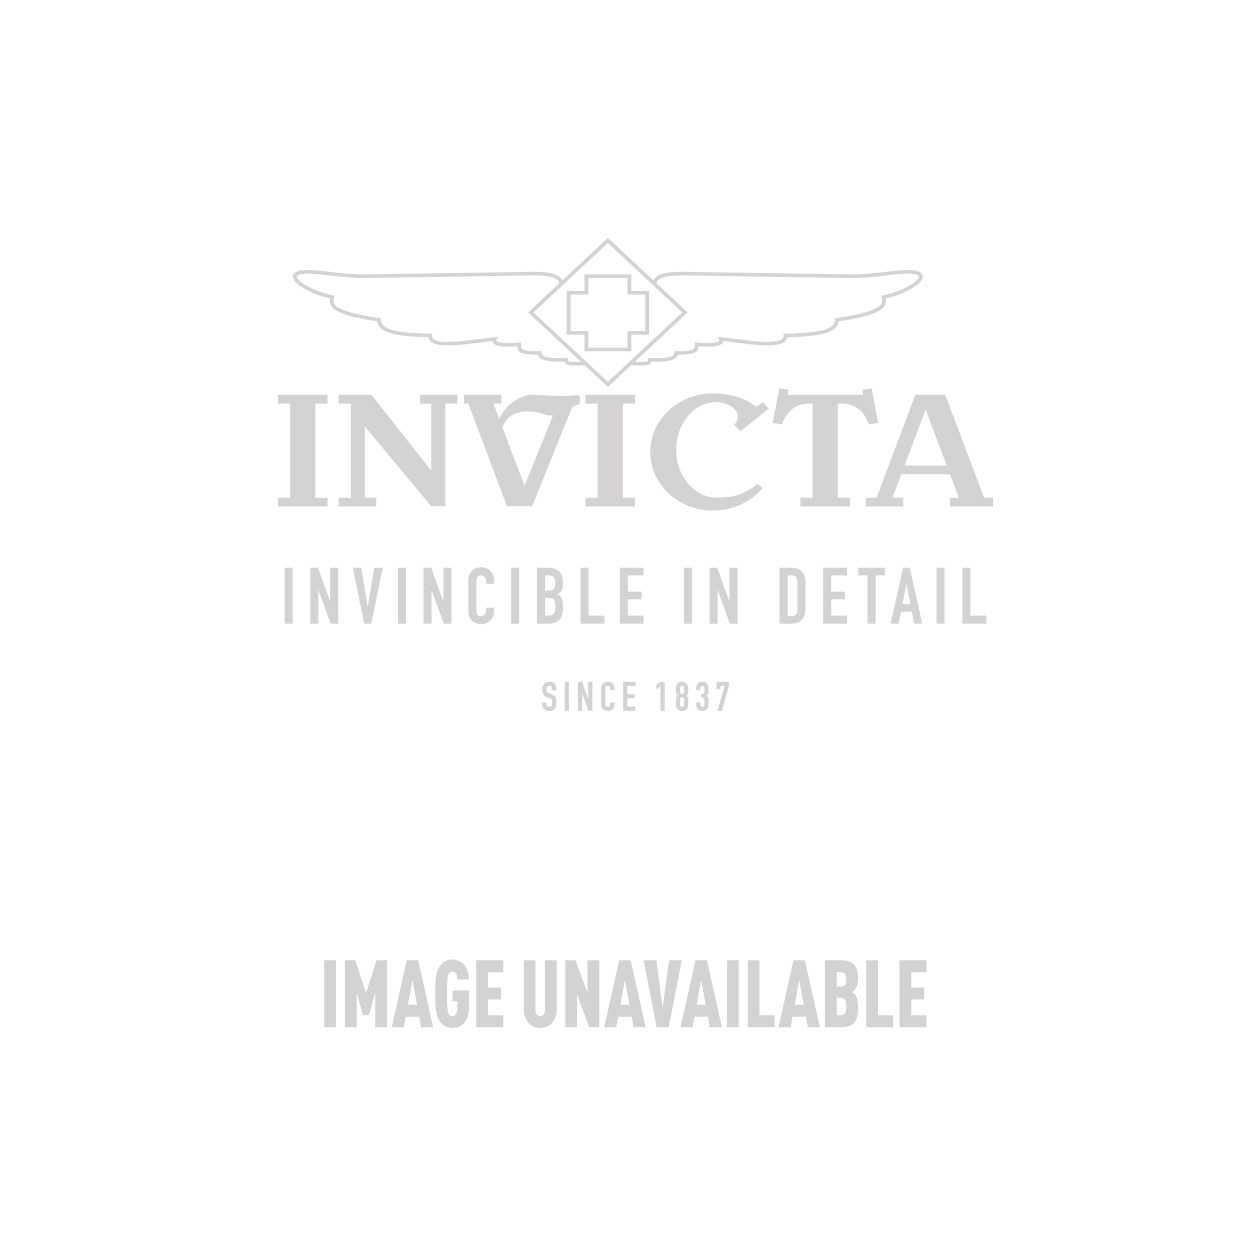 Invicta Pro Diver Swiss Movement Quartz Watch